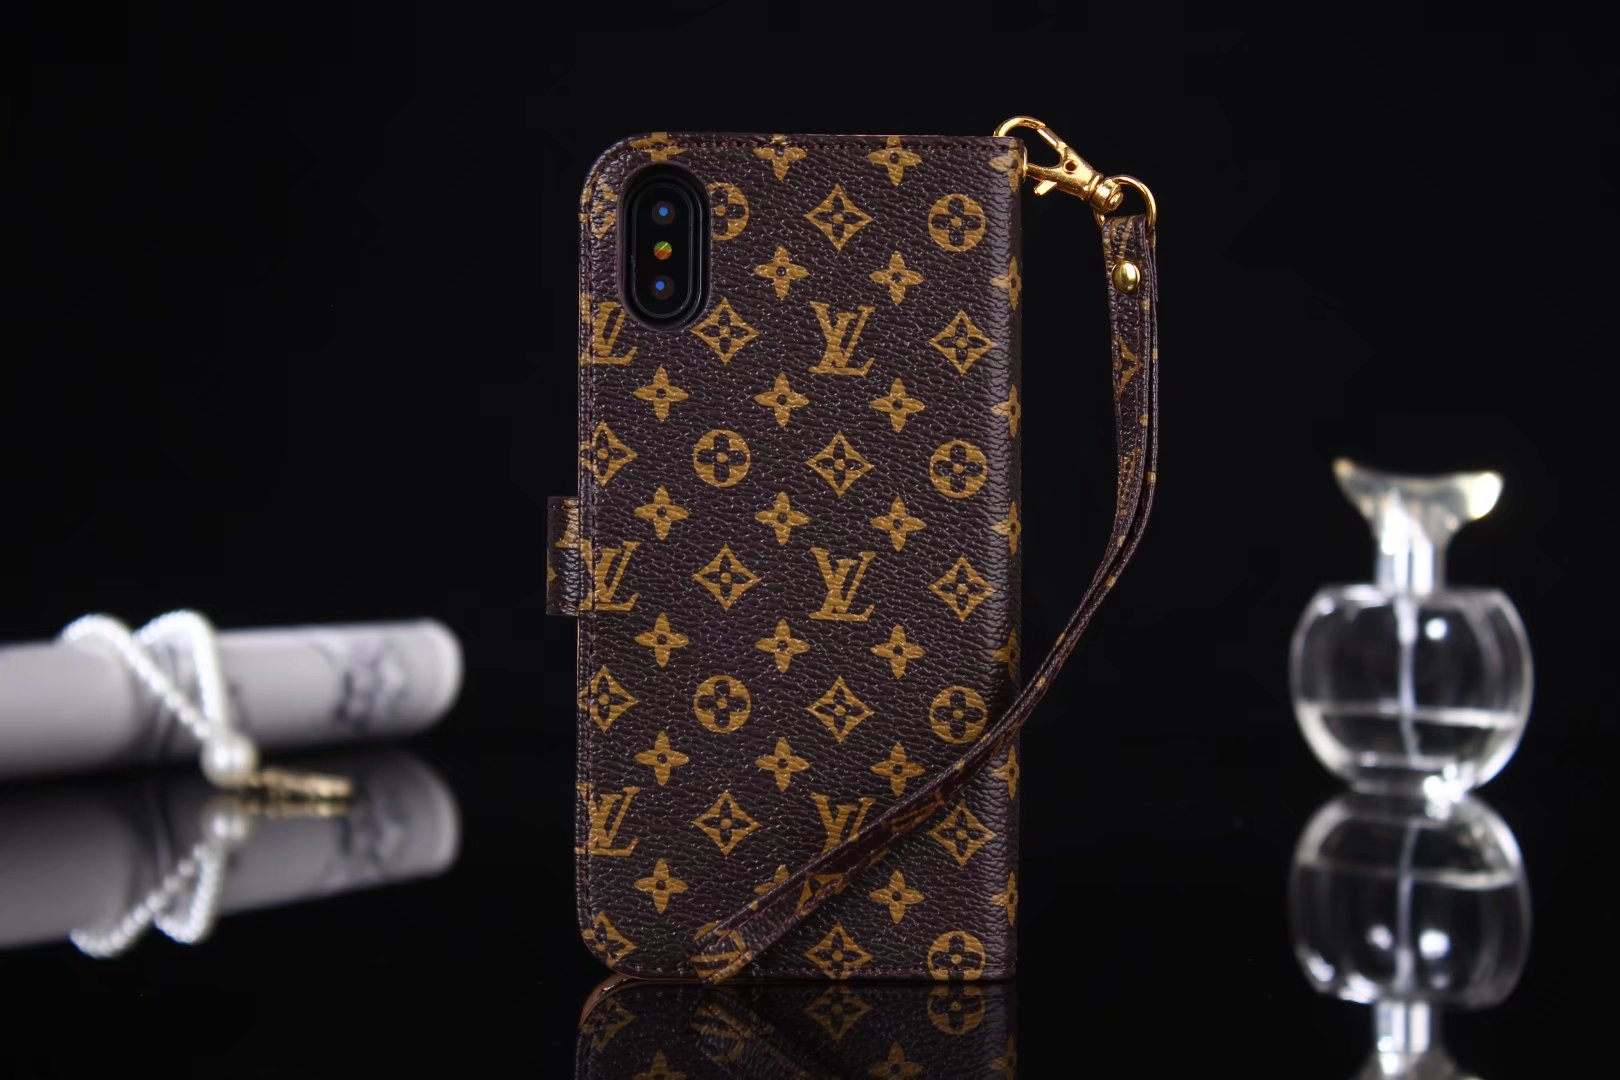 X cases iphone top rated iphone X cases Louis Vuitton iPhone X case iphone 8 best covers top cases for iphone 8 apple phone covers 8 in case iphone 6 cases iphone plus case